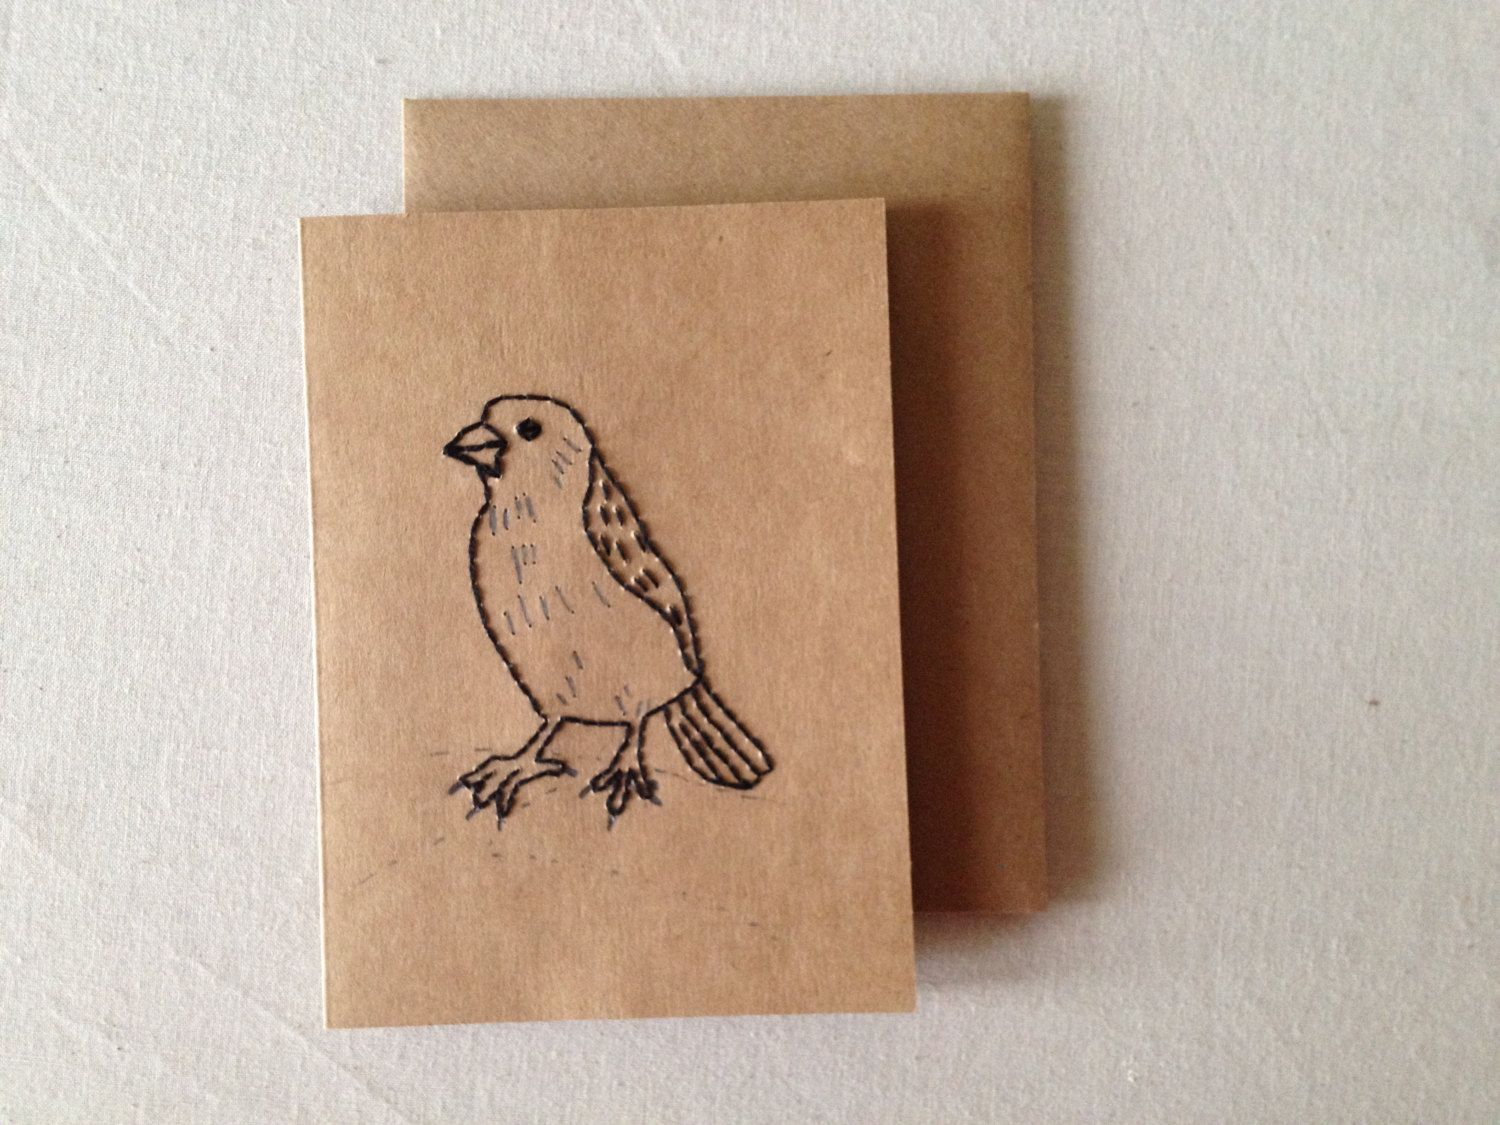 Hand embroidered bird greeting card embroidered cardsbirthday hand embroidered bird greeting card embroidered cardsbirthday cardseasons greetingsspecial kristyandbryce Image collections